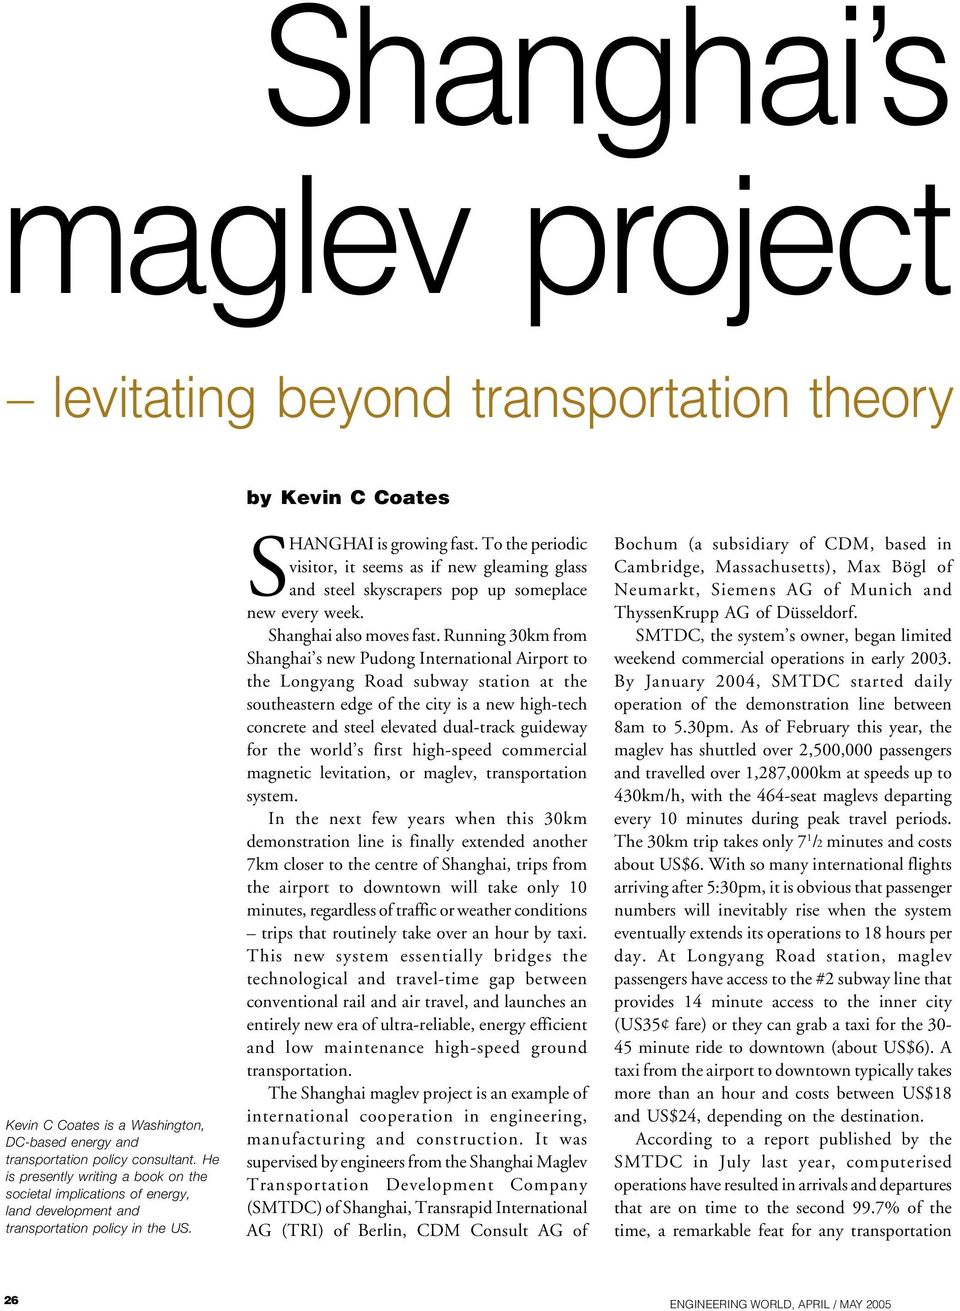 Shanghai s maglev project - PDF